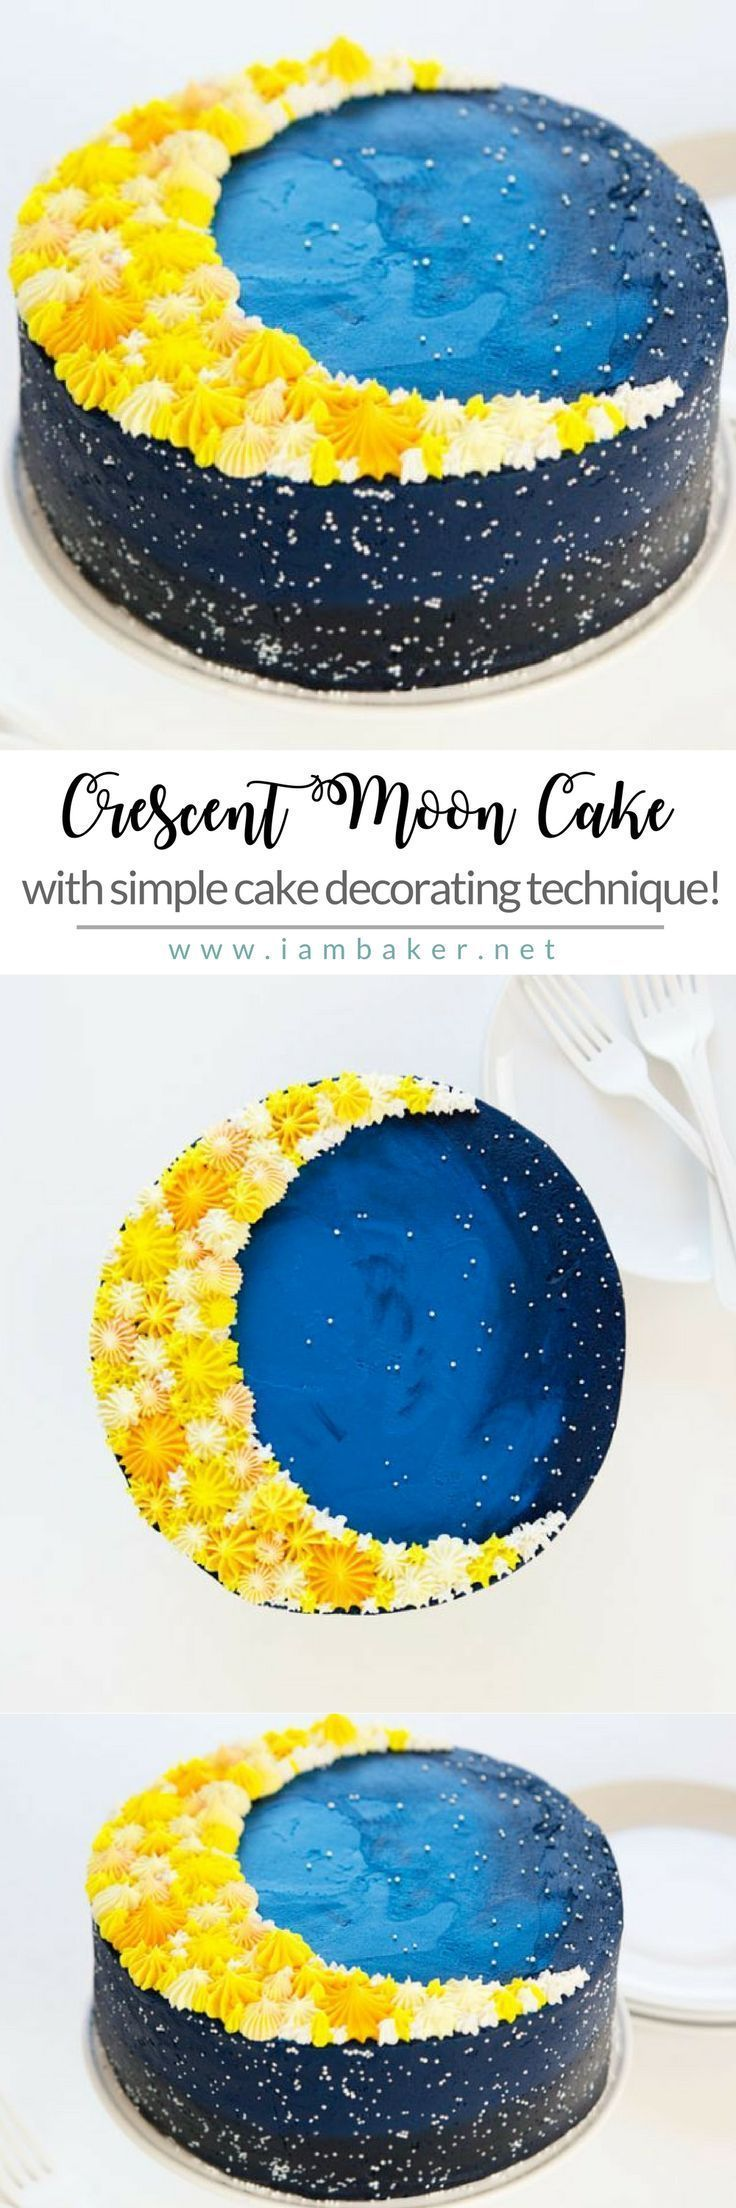 Heres a step by step on how to bake this easy cake recipe